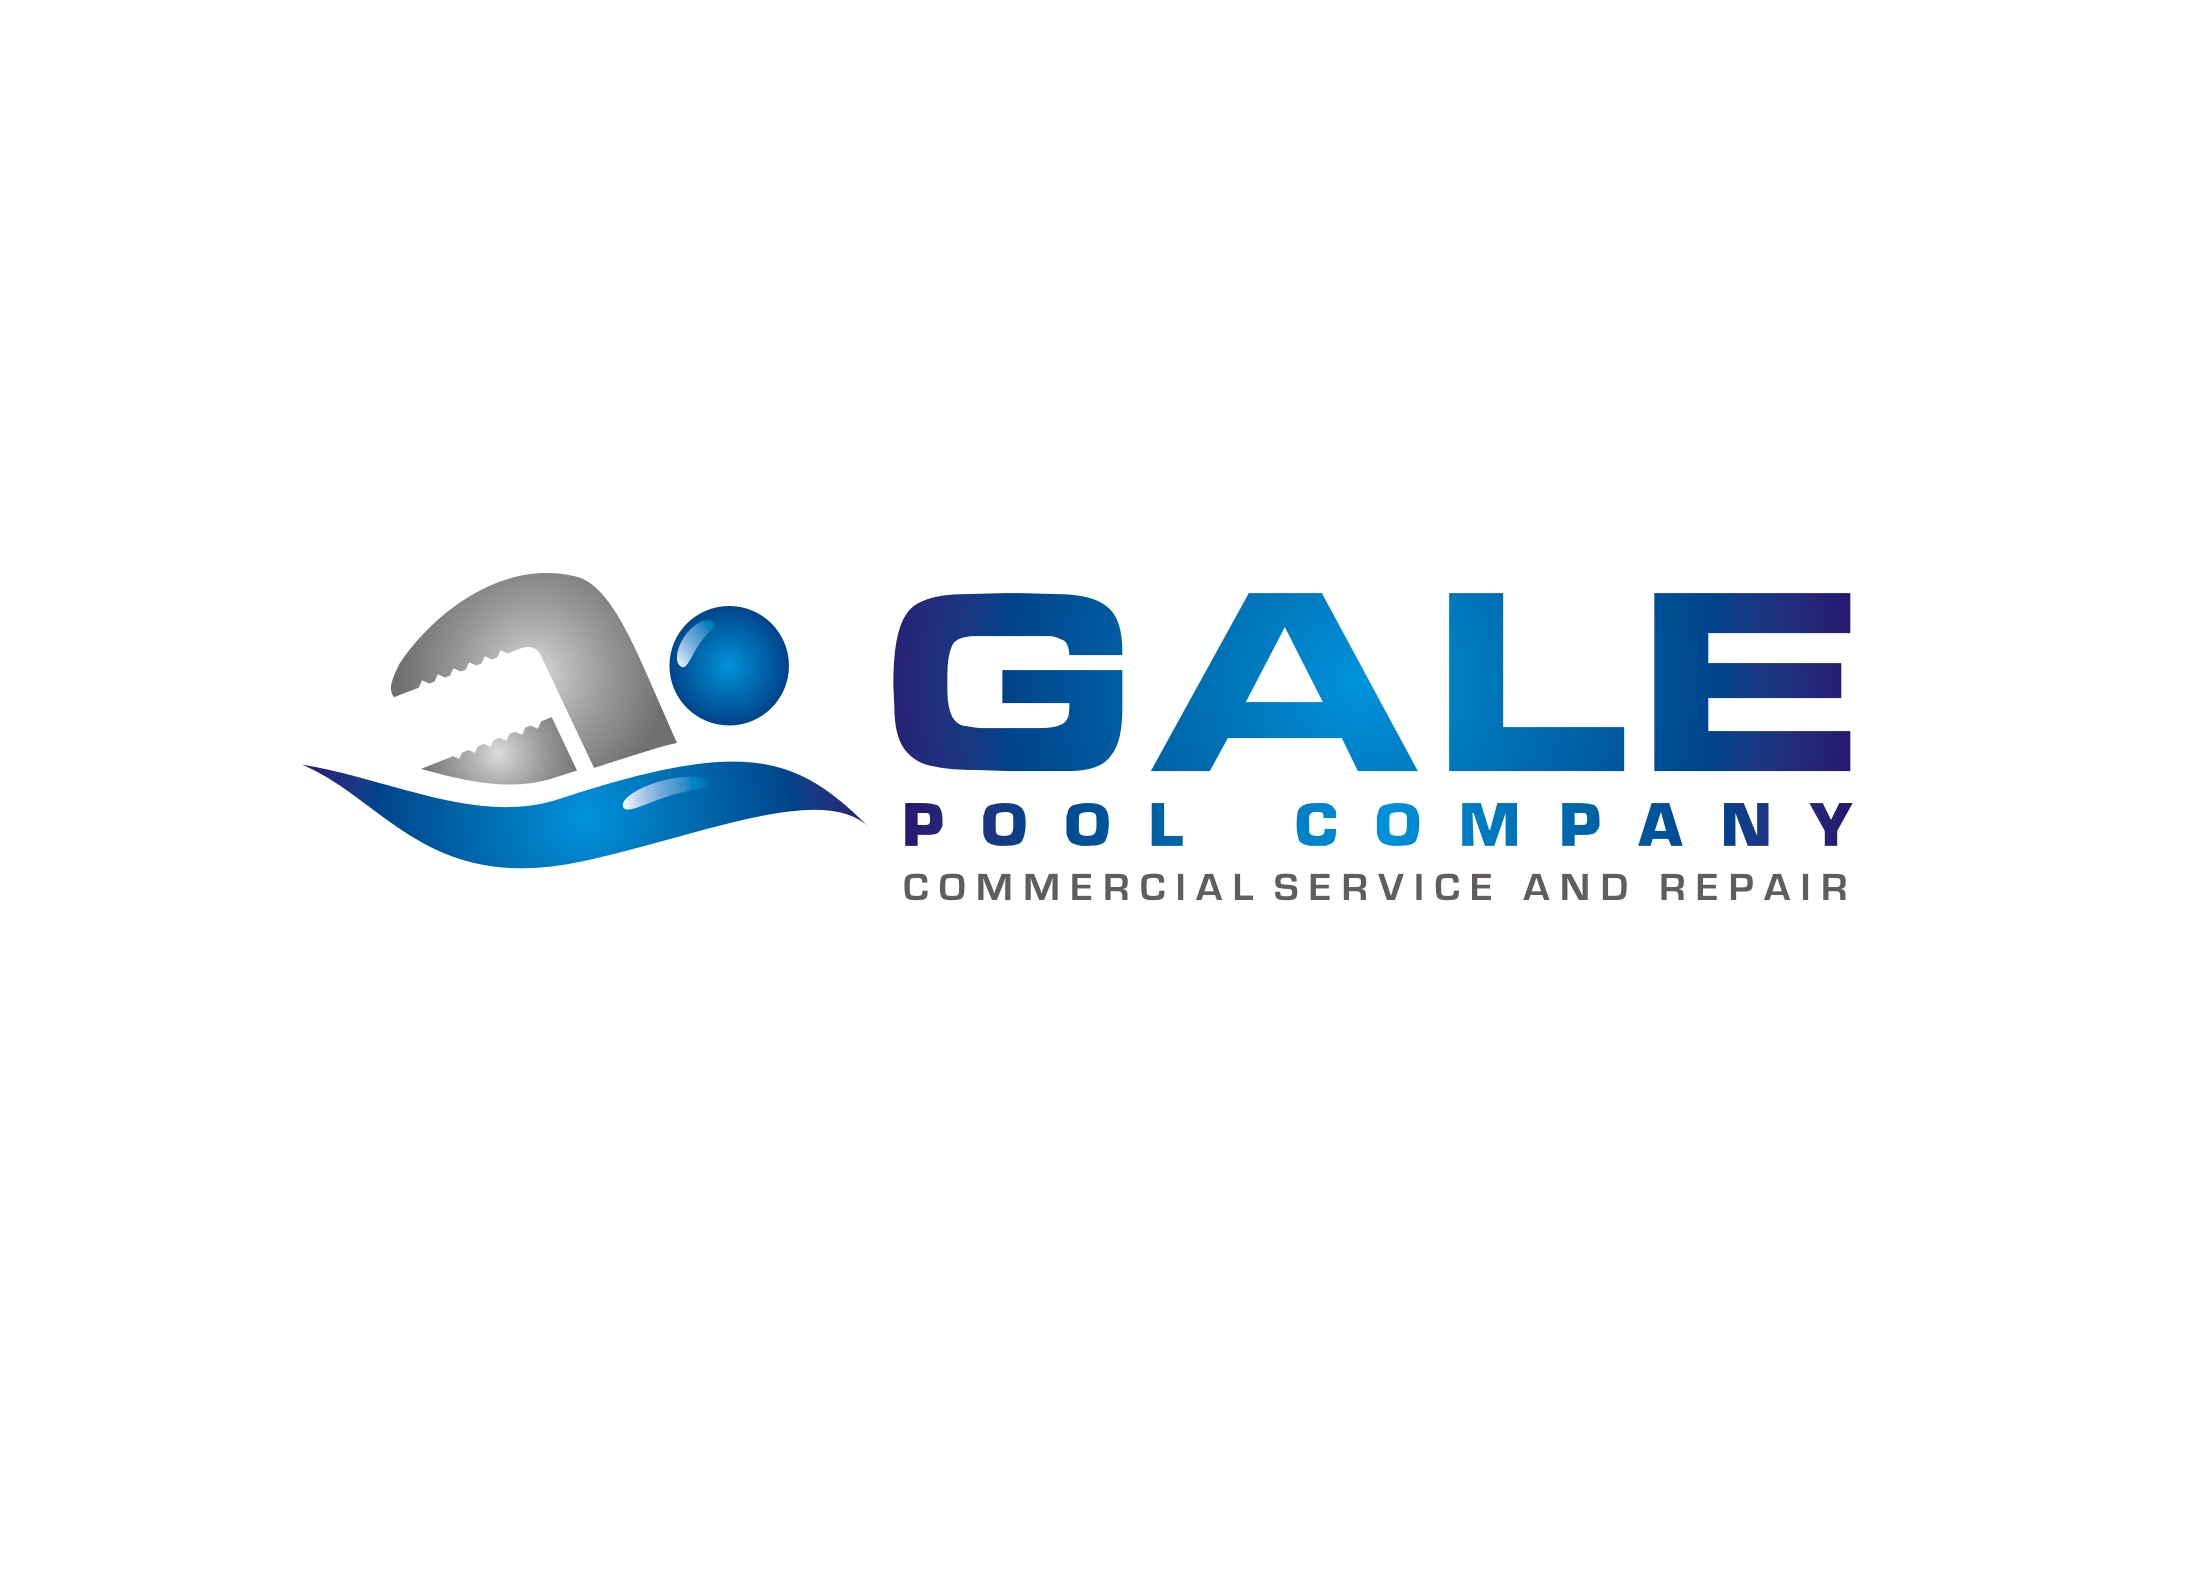 Logo Design by Zdravko Krulj - Entry No. 90 in the Logo Design Contest Imaginative Logo Design for Gale Pool Company.